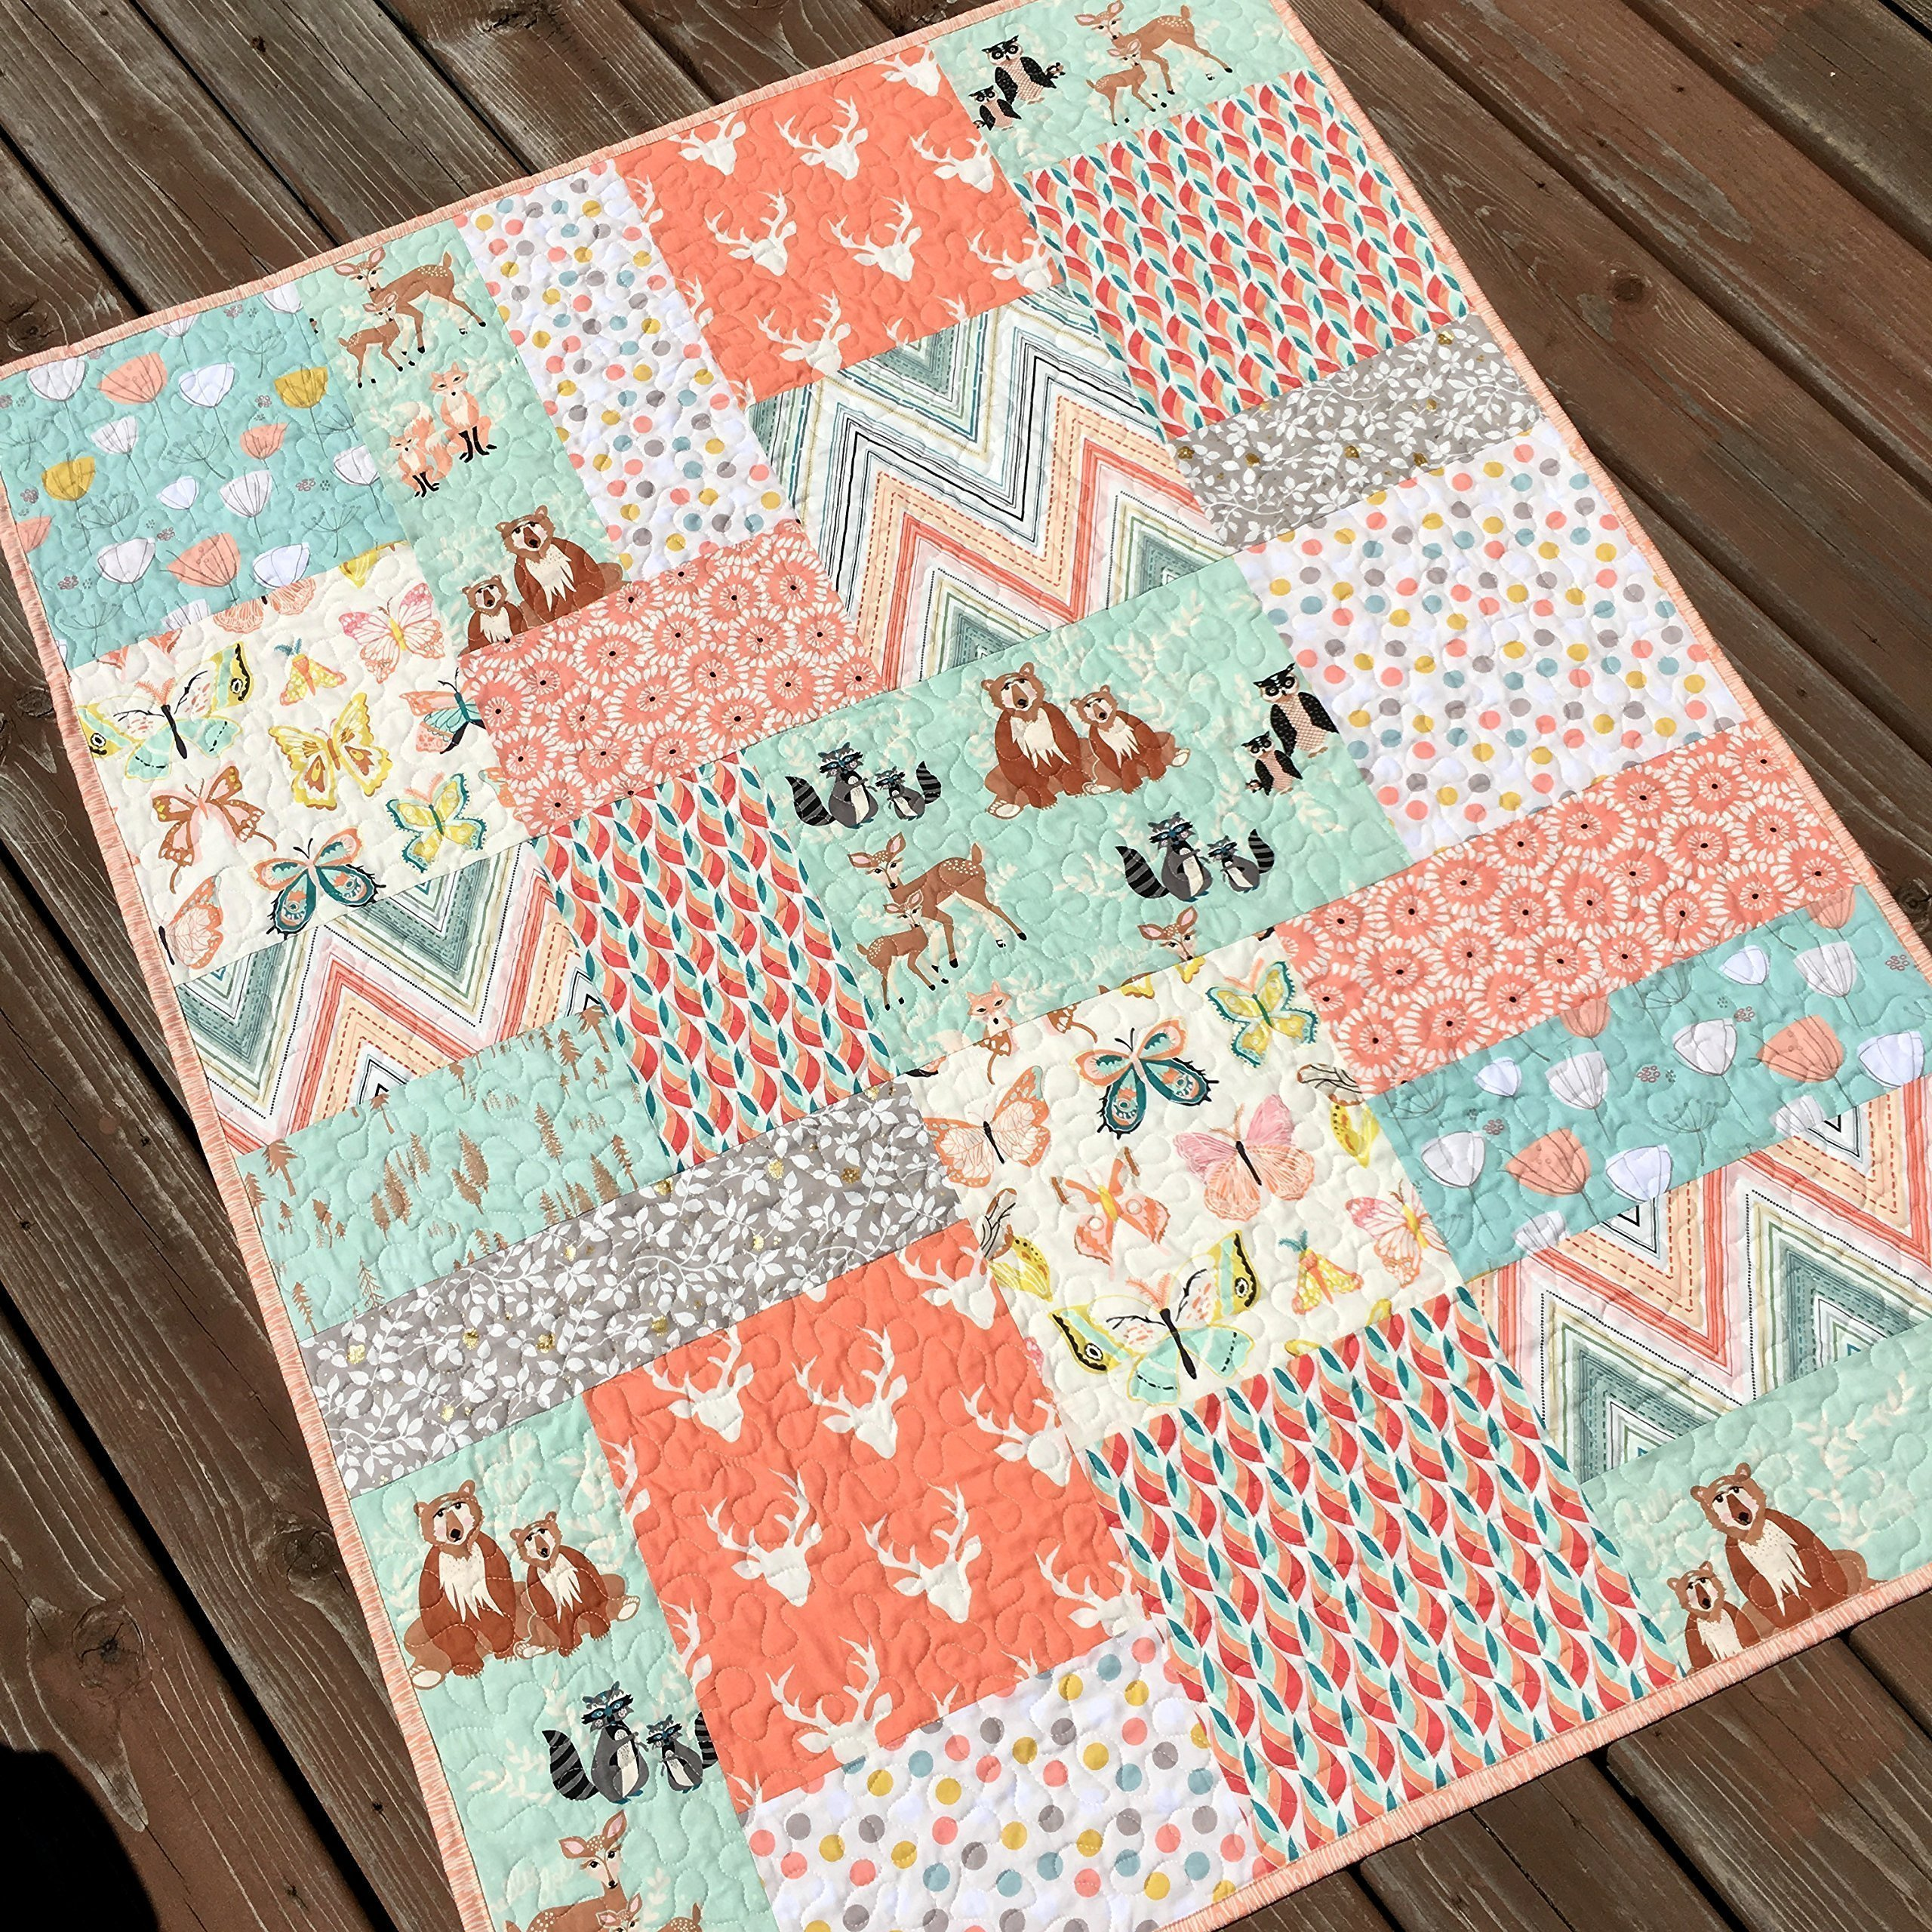 Woodland Baby Girl Quilt Handmade Big Block Patchwork Mint Peach Deer Bear Butterflies Forest Animals by Carlene Westberg Designs